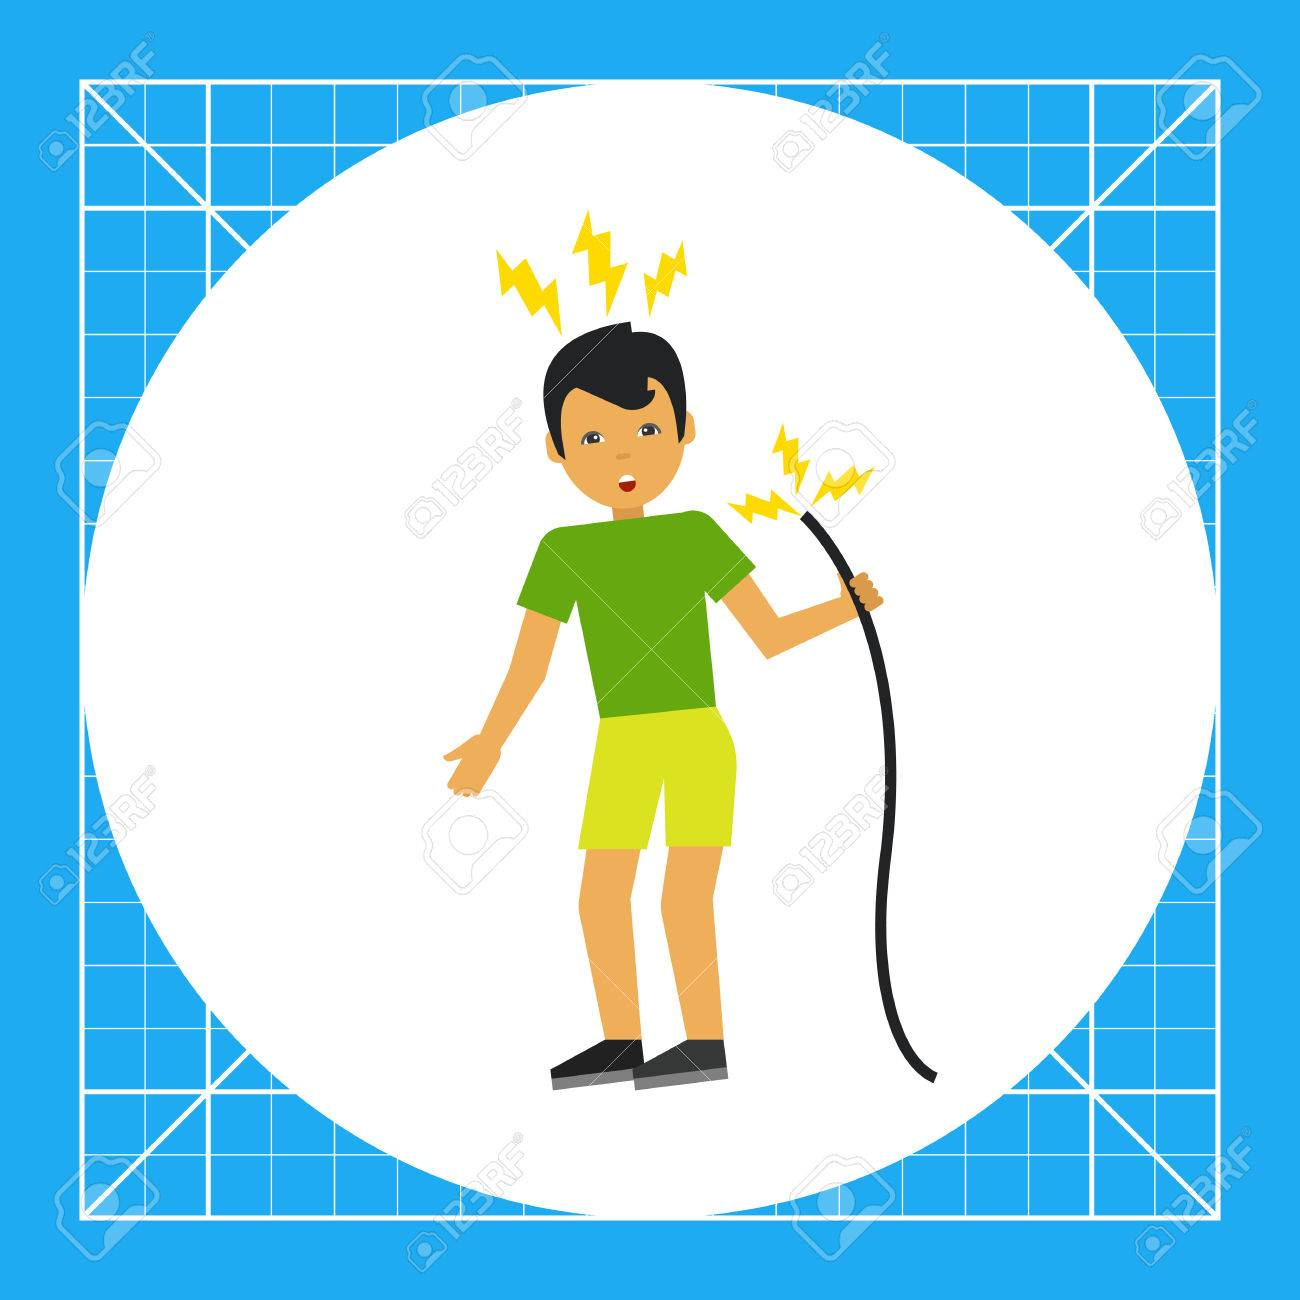 Illustration Of Man Getting Electric Shock From Cable. Accident ...